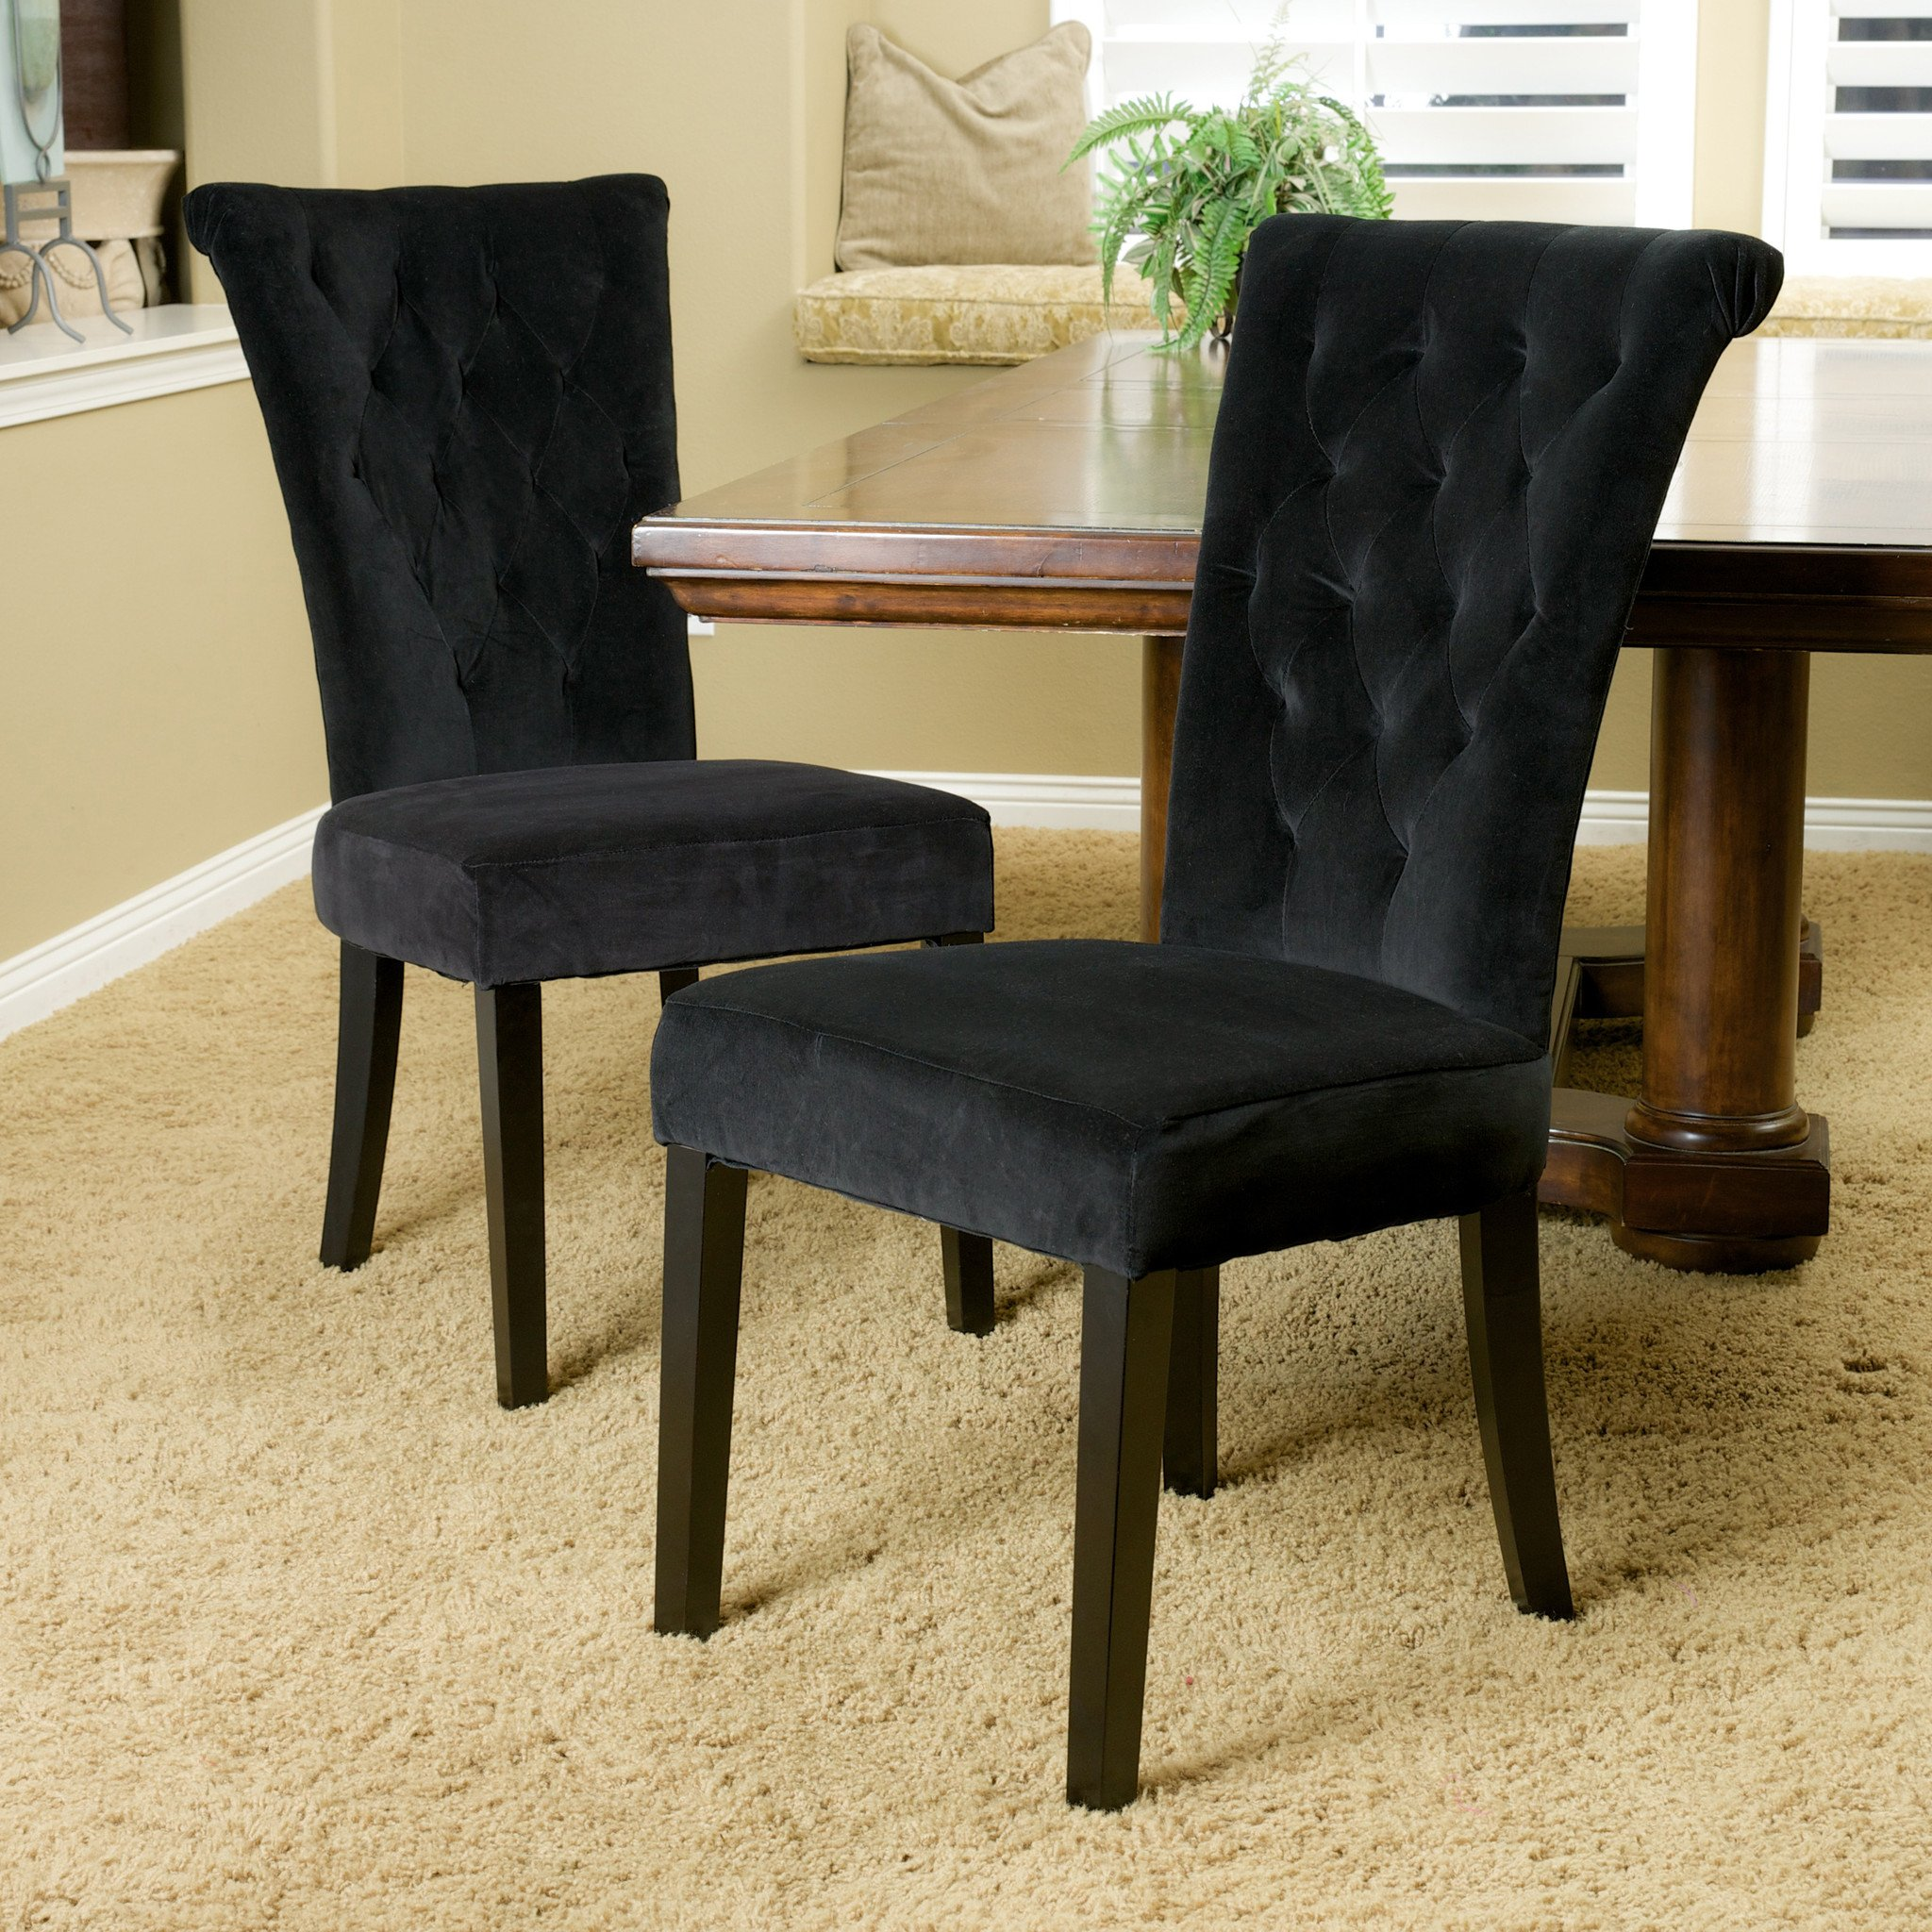 Paulina Black Velvet Dining Chairs Set Of 2 Fabric Dining